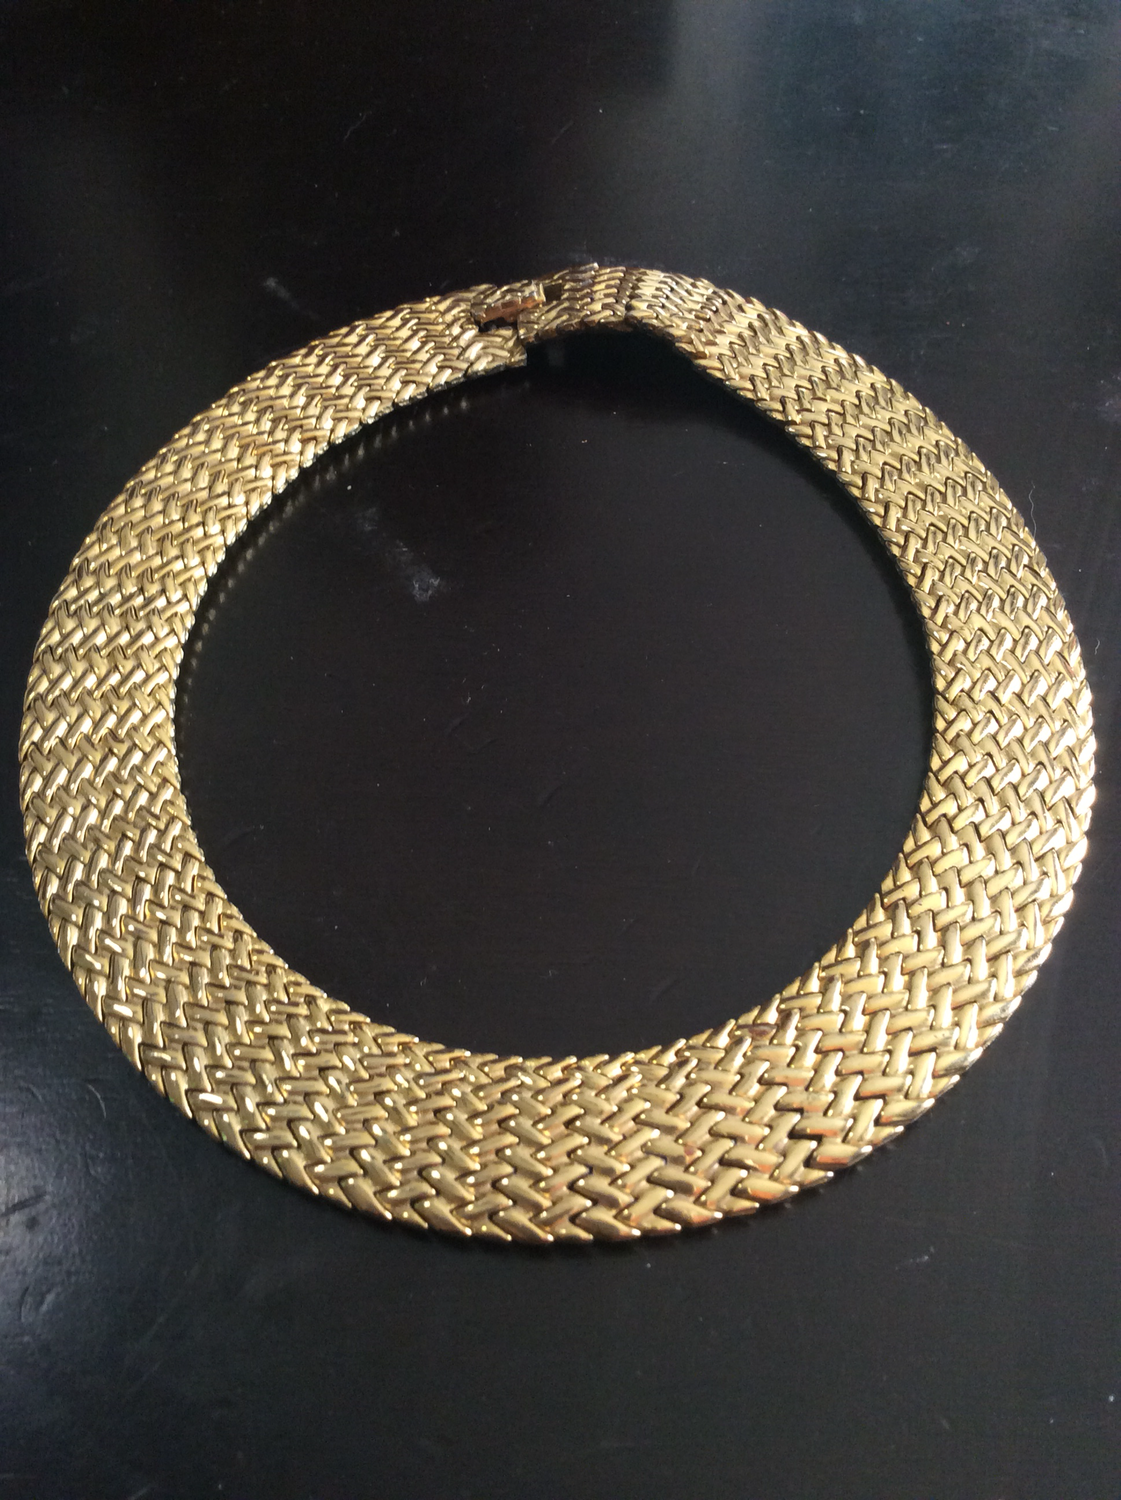 Necklace amplify inner chi (life force energy) and intensify emitted aura